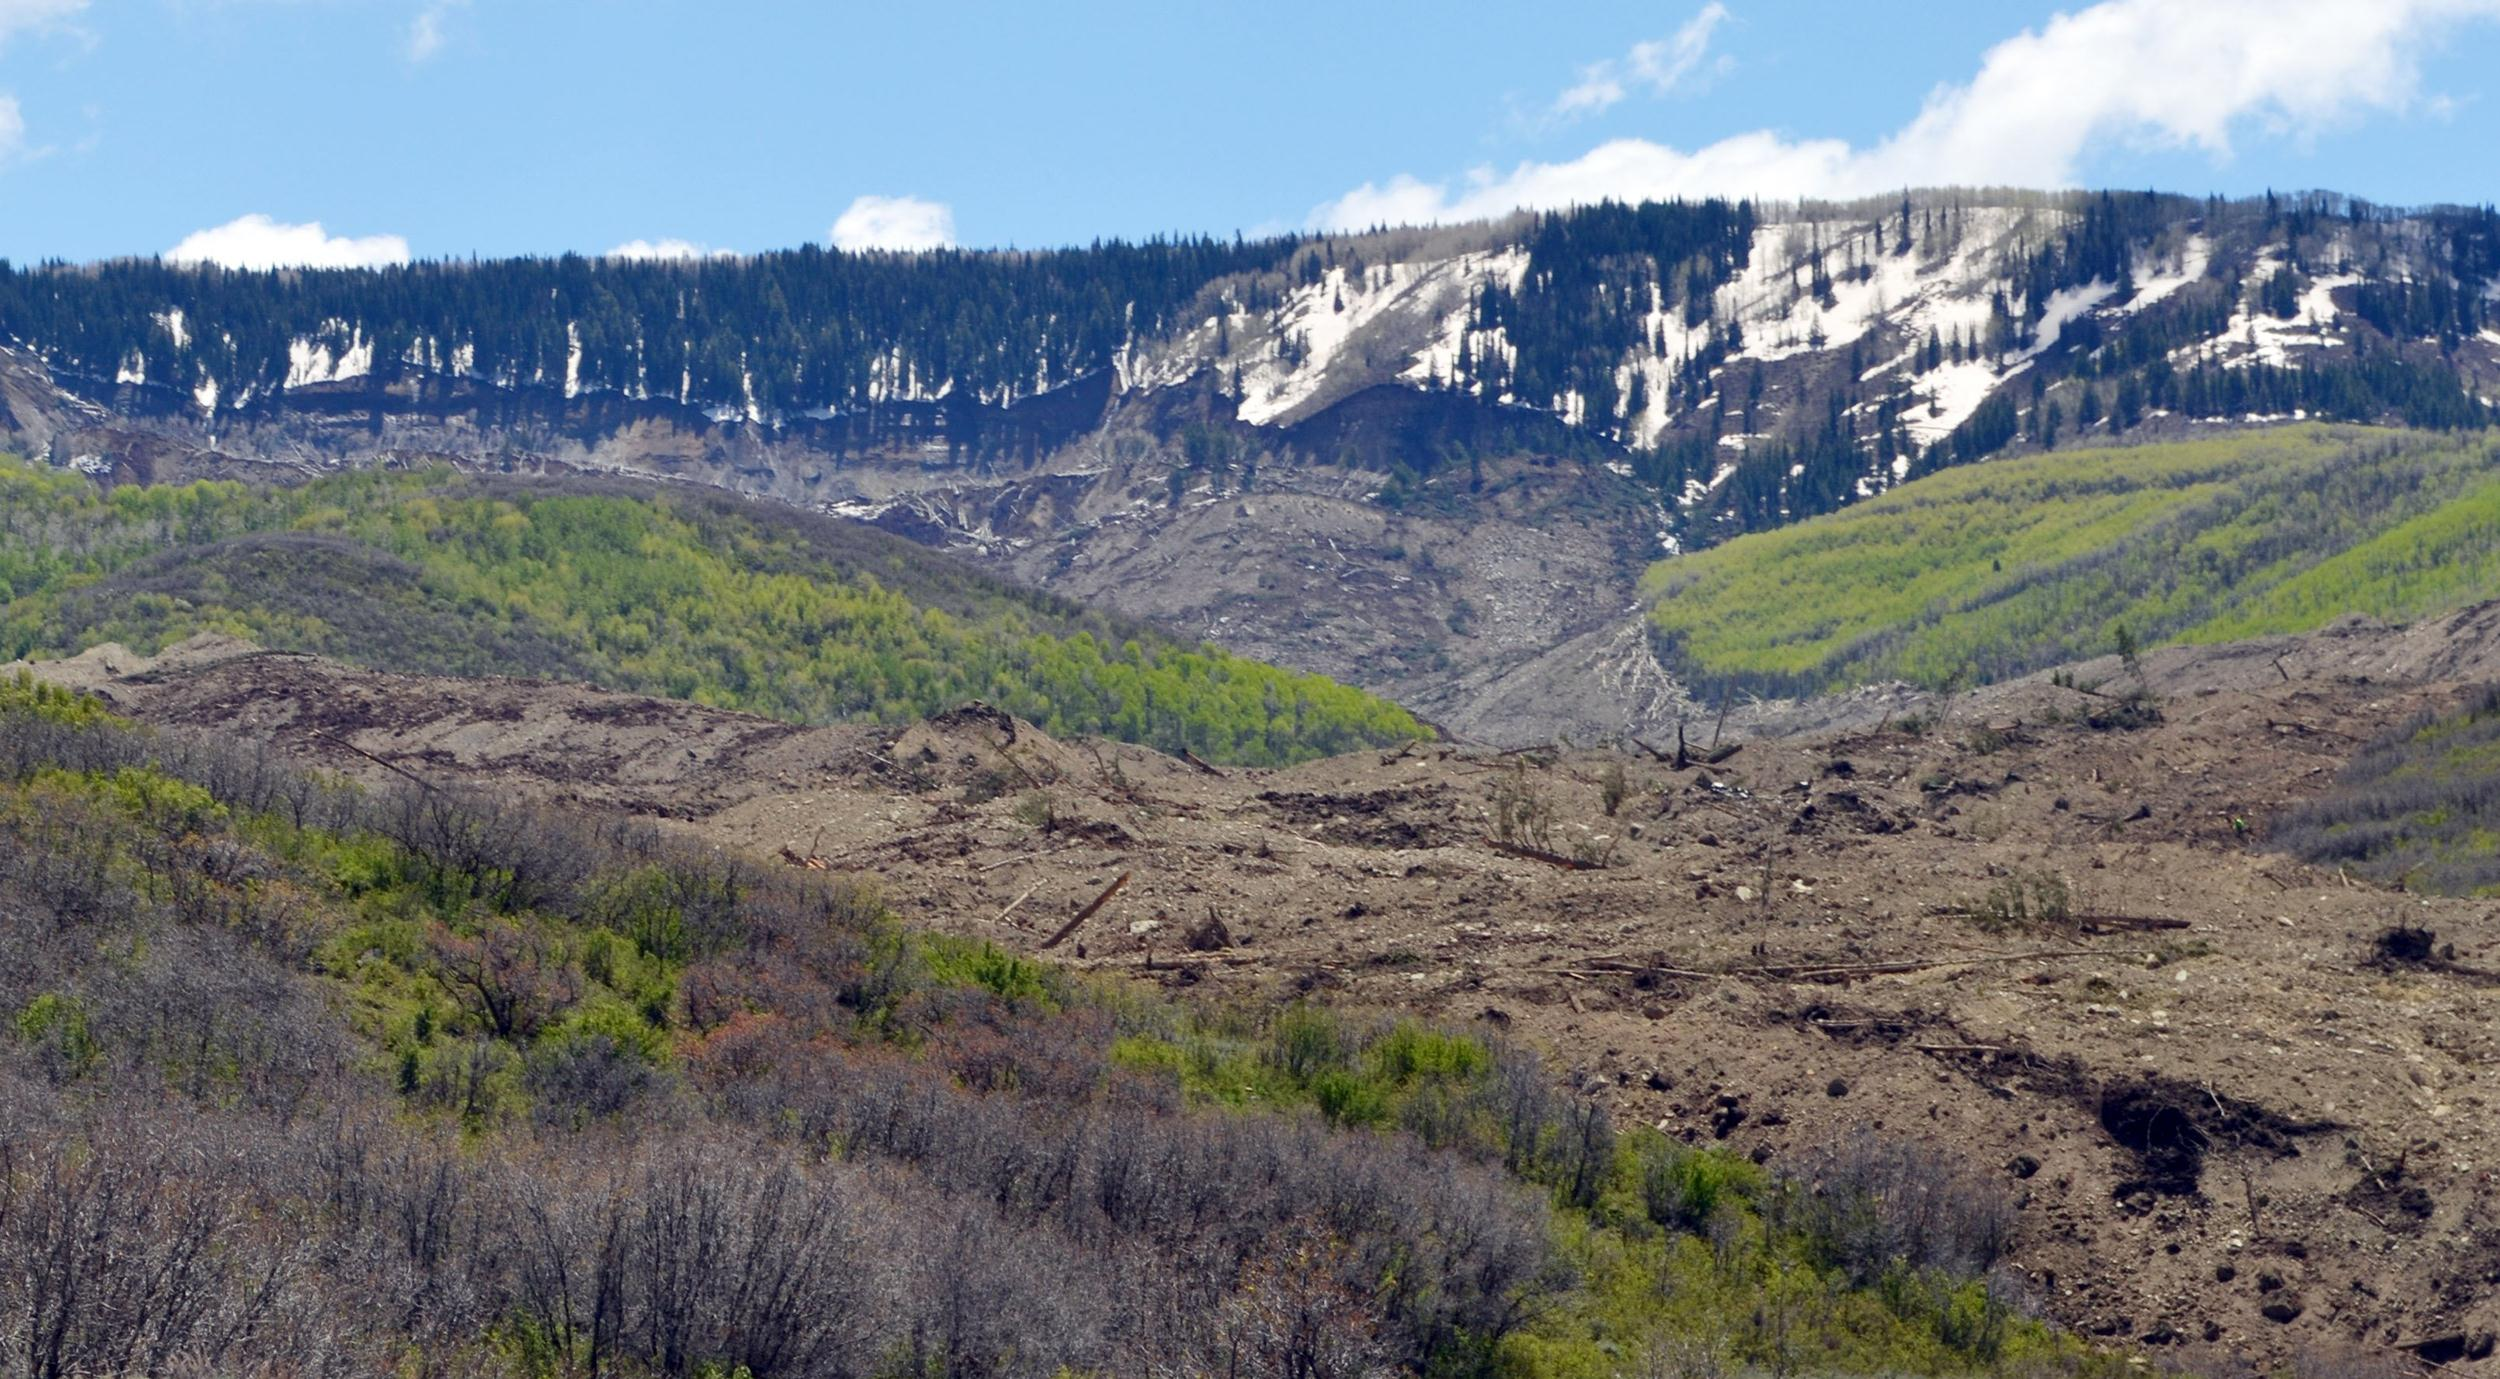 Image: The results of a three-mile long mudslide are piled below Grand Mesa